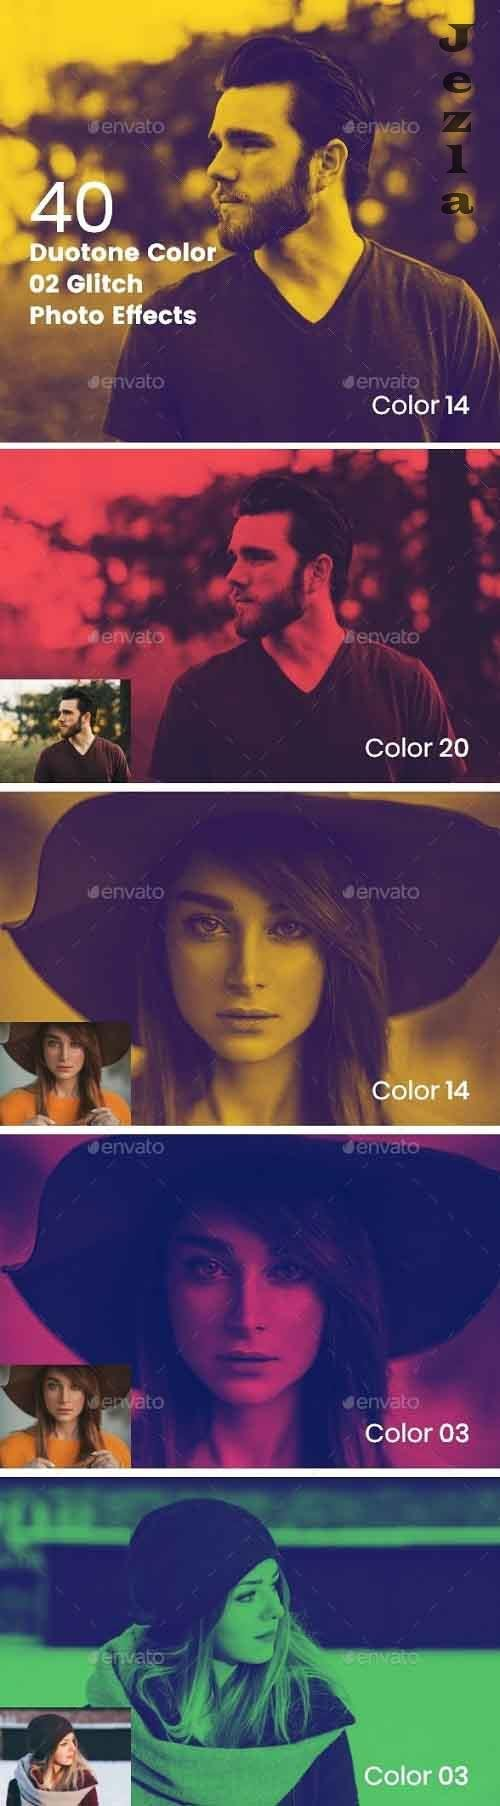 Duotone Color Effects Photo Template 27693687